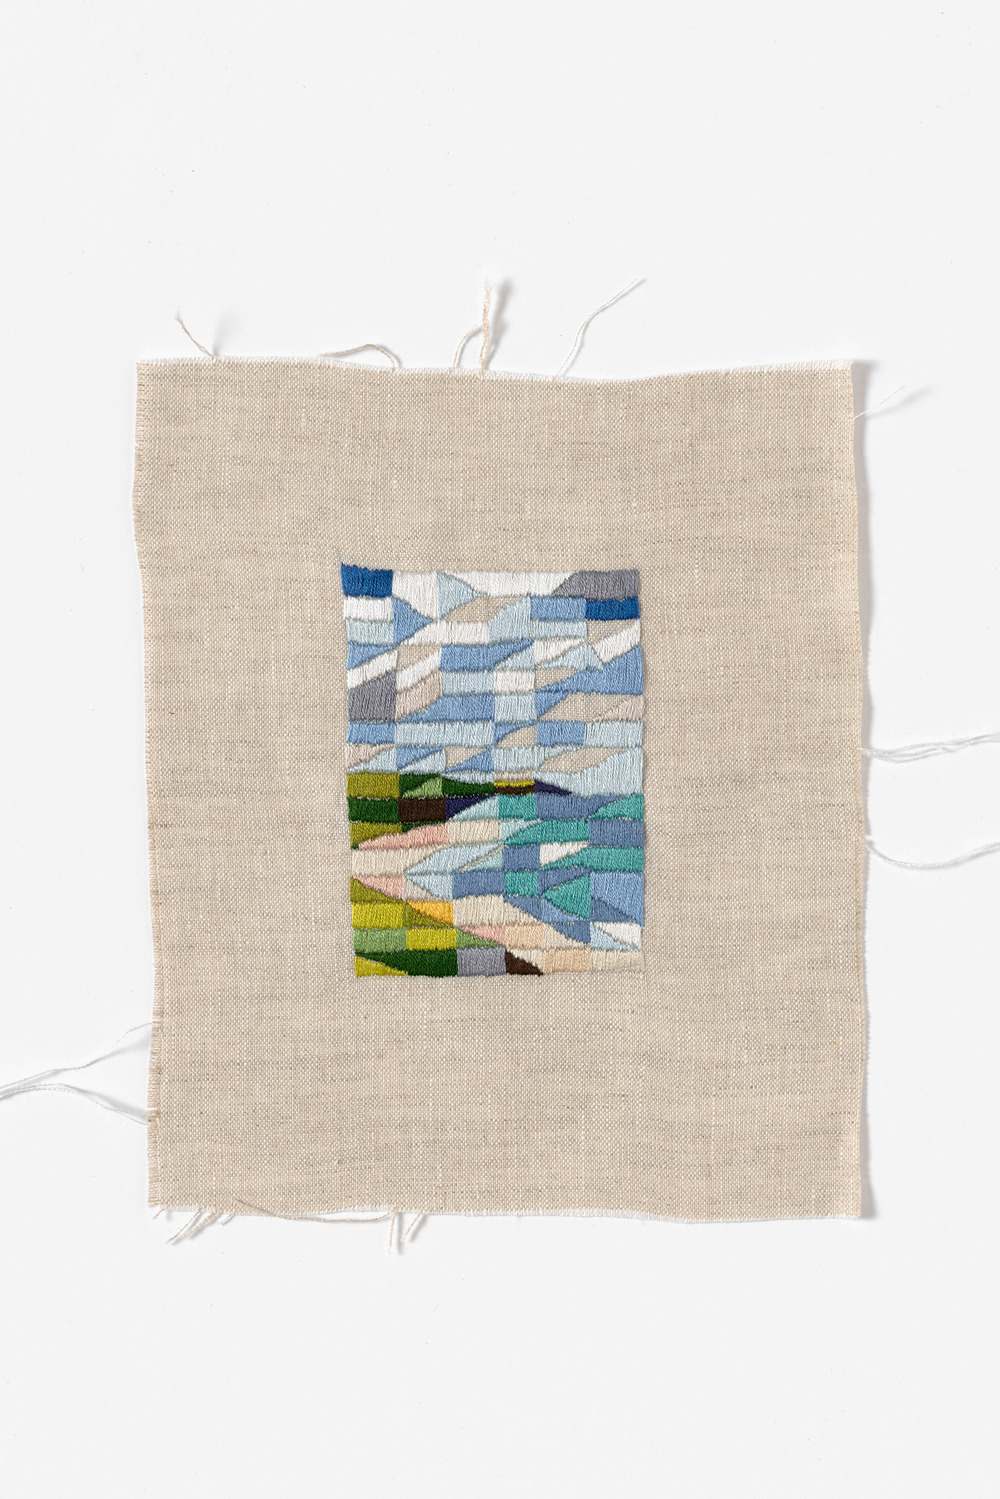 Looking North, Venus Bay 2015 Cotton thread on linen 21 x 27cm